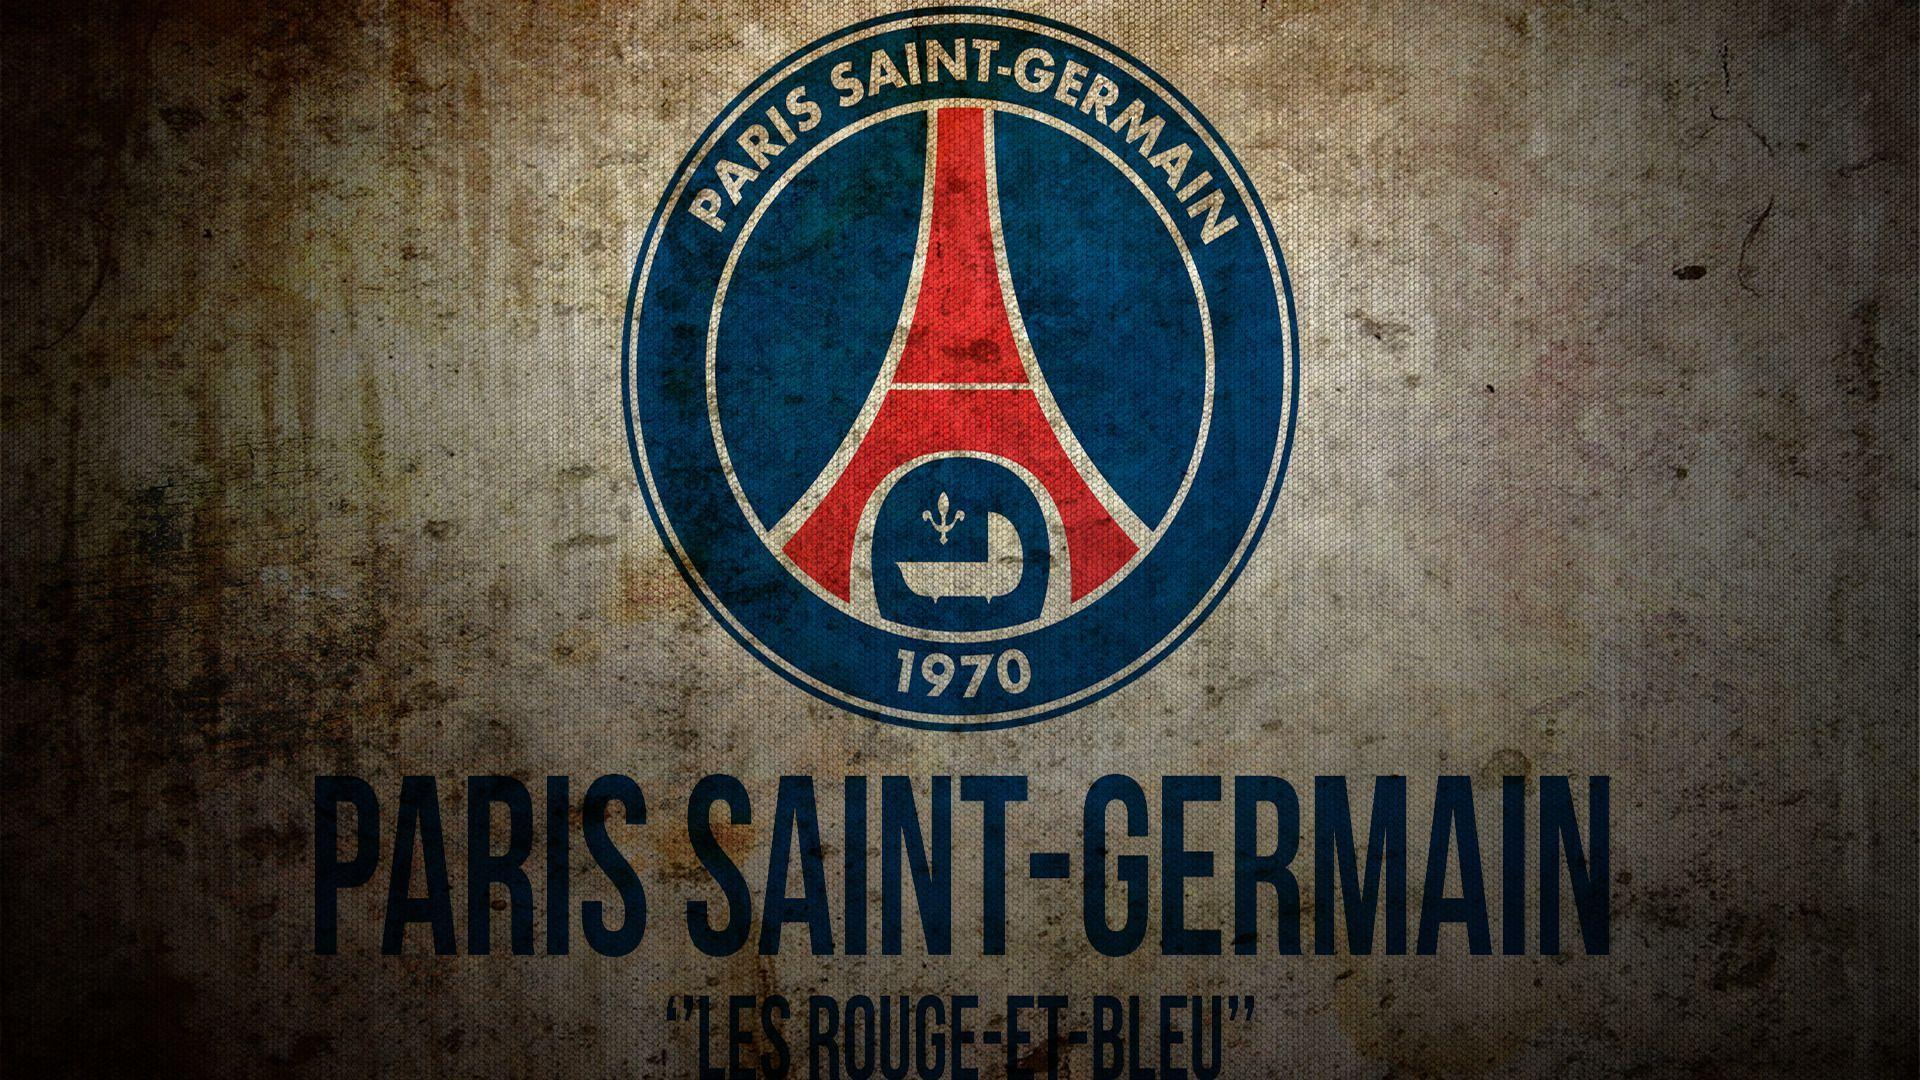 Paris Saint-Germain - PSG Wallpapers - Wallpaper Cave